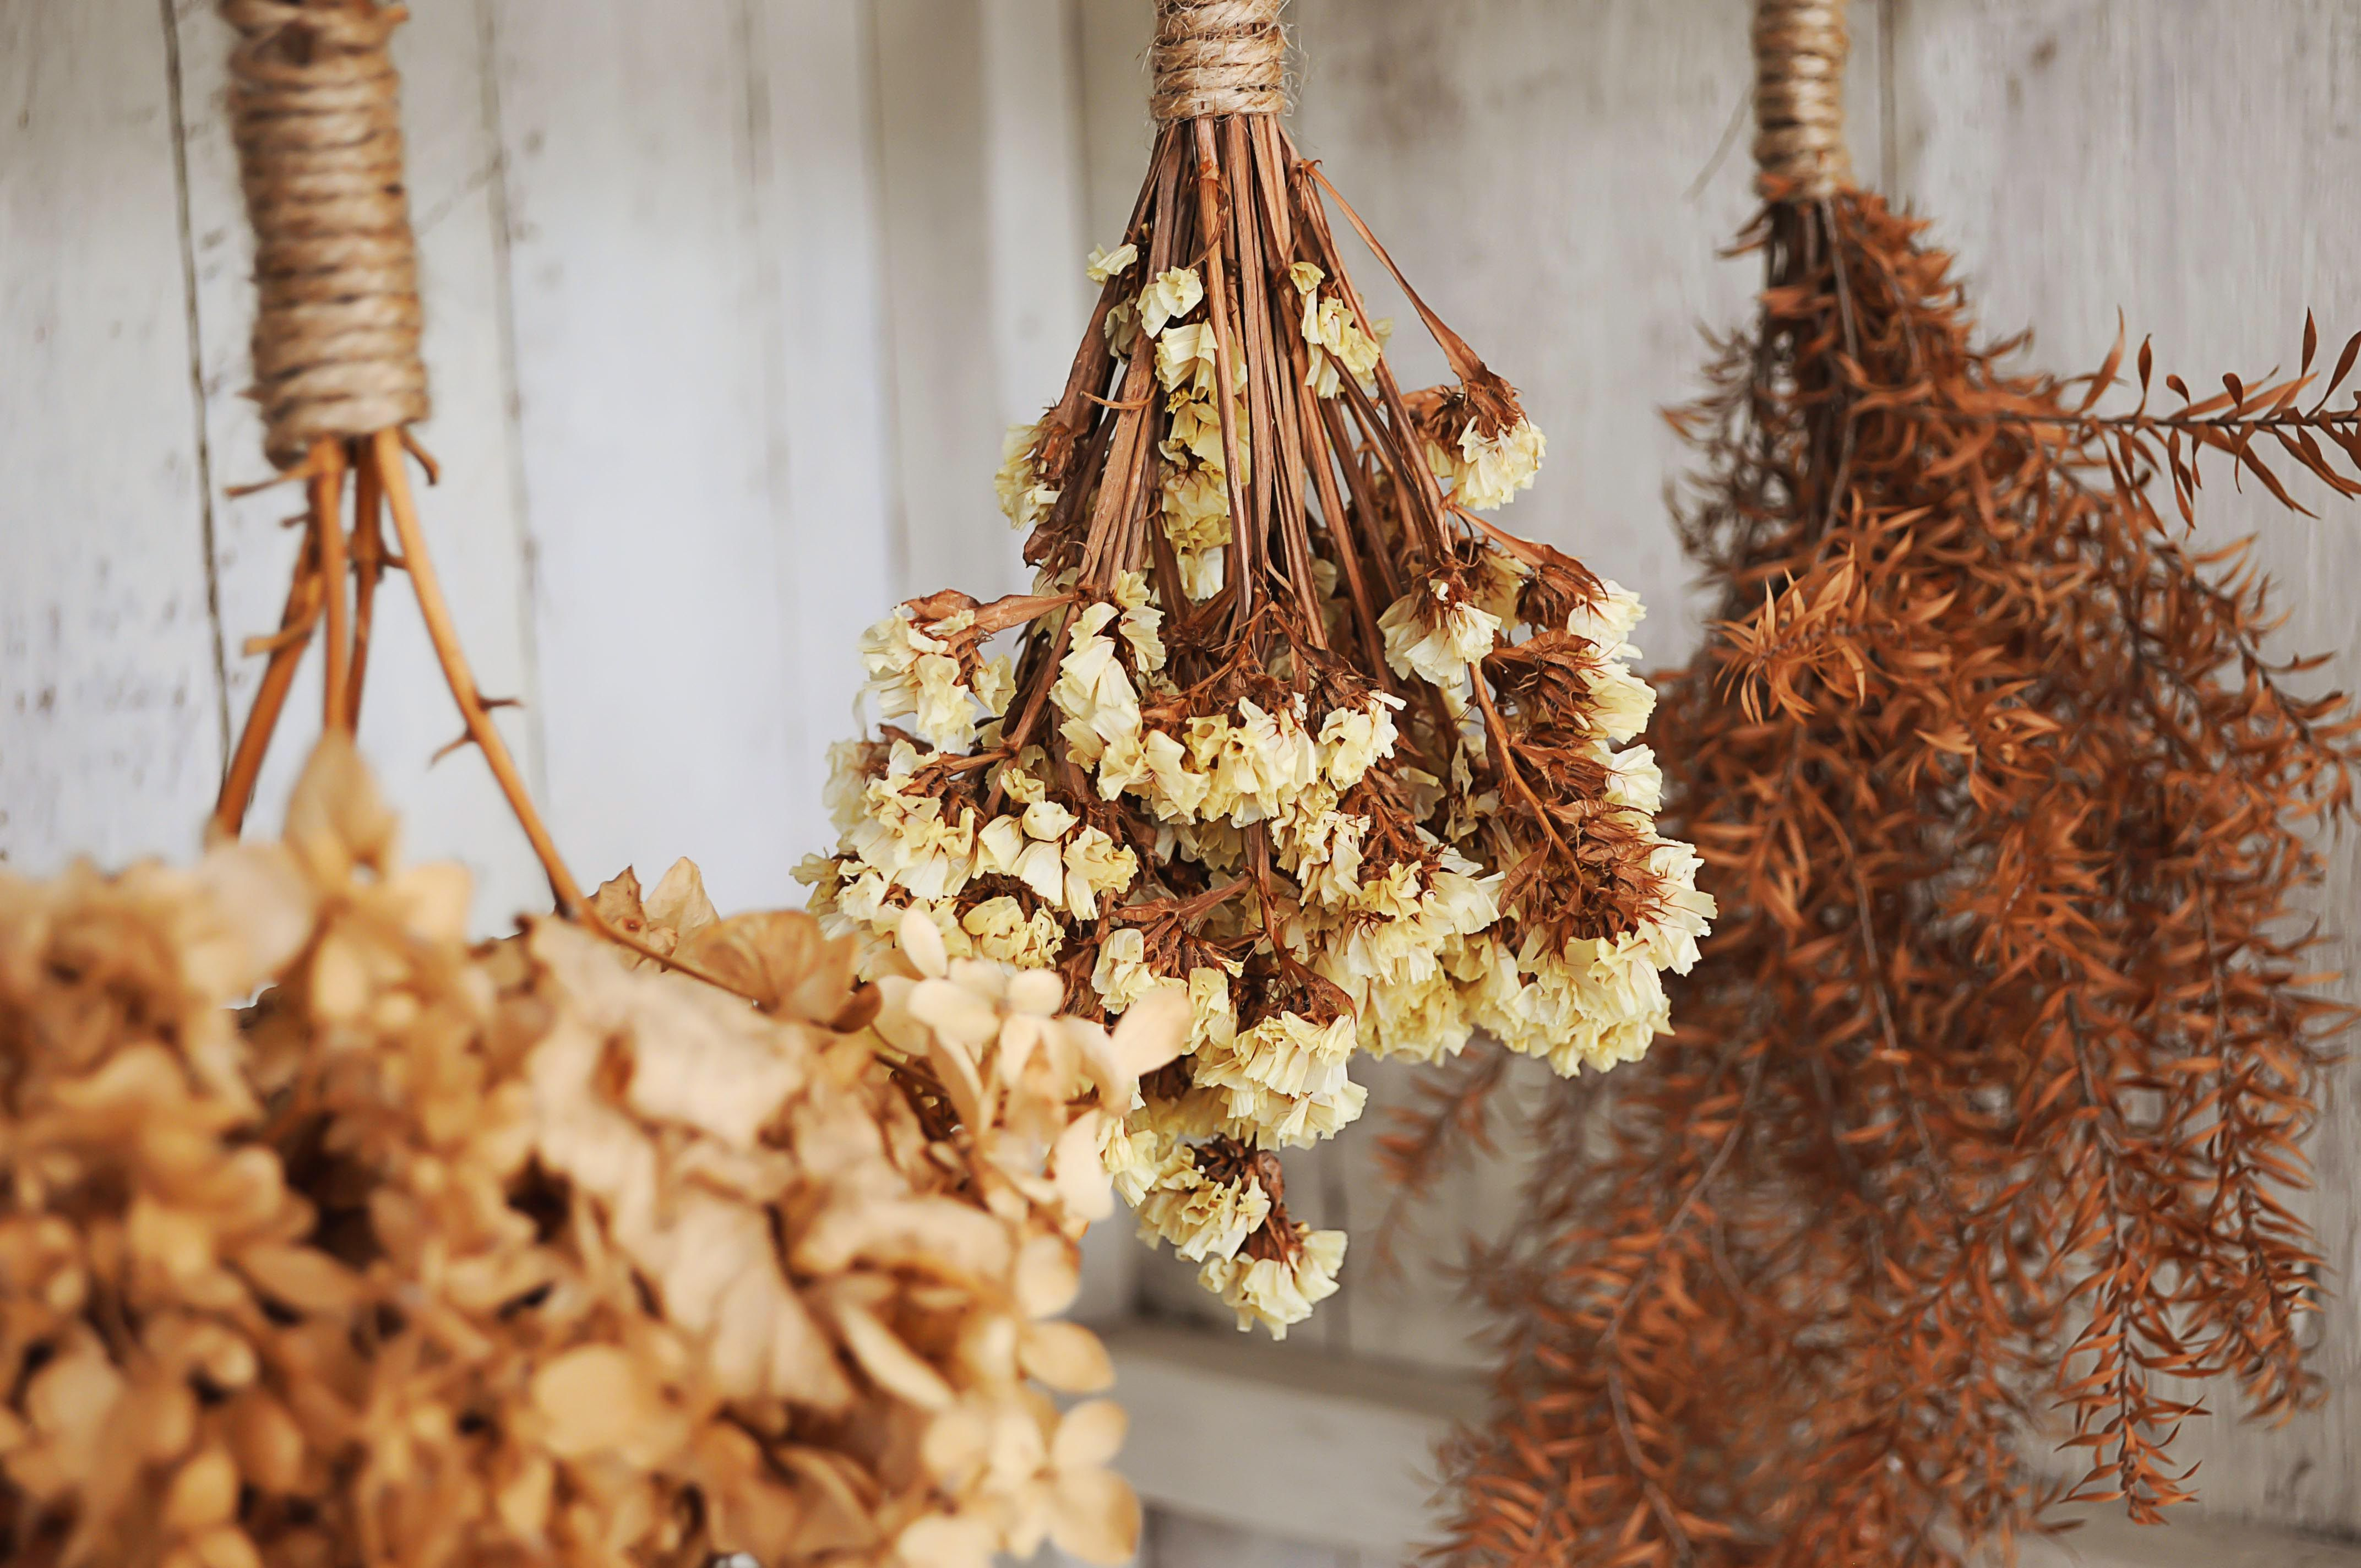 How to Dry Flowers with Laundry Borax